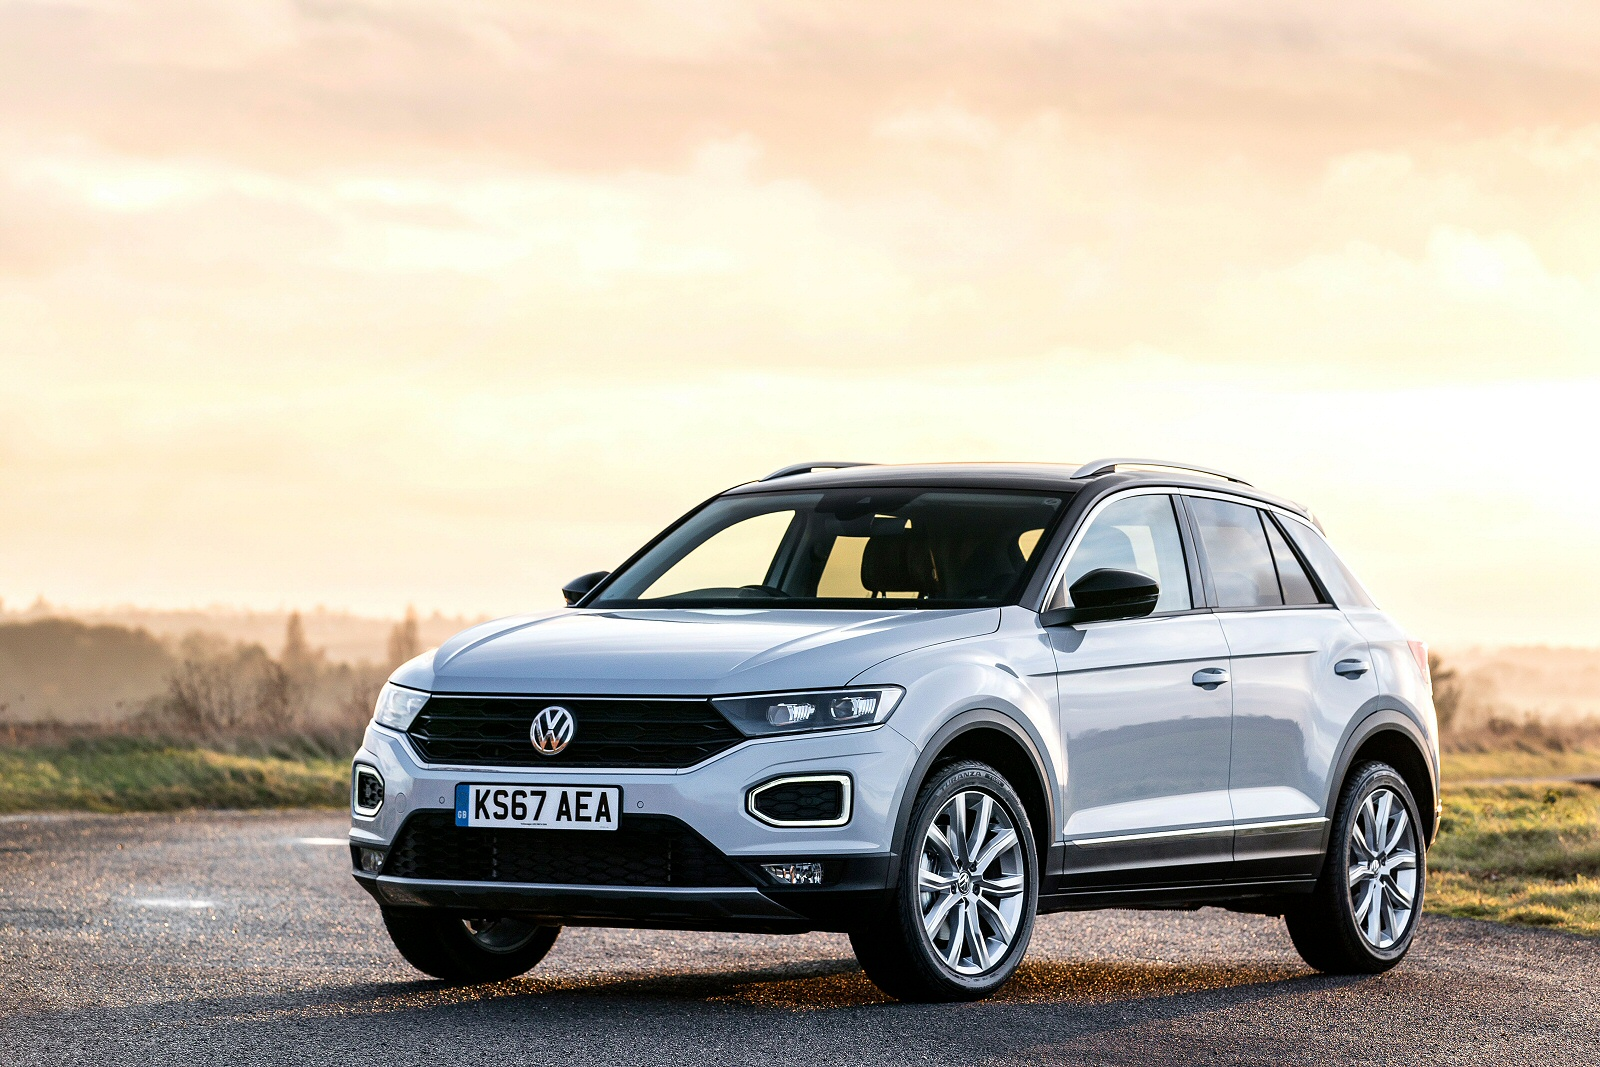 Cheap Personal Contract Hire Lease Volkswagen T-roc Hatchback 1 0 TSI  Design 5Dr